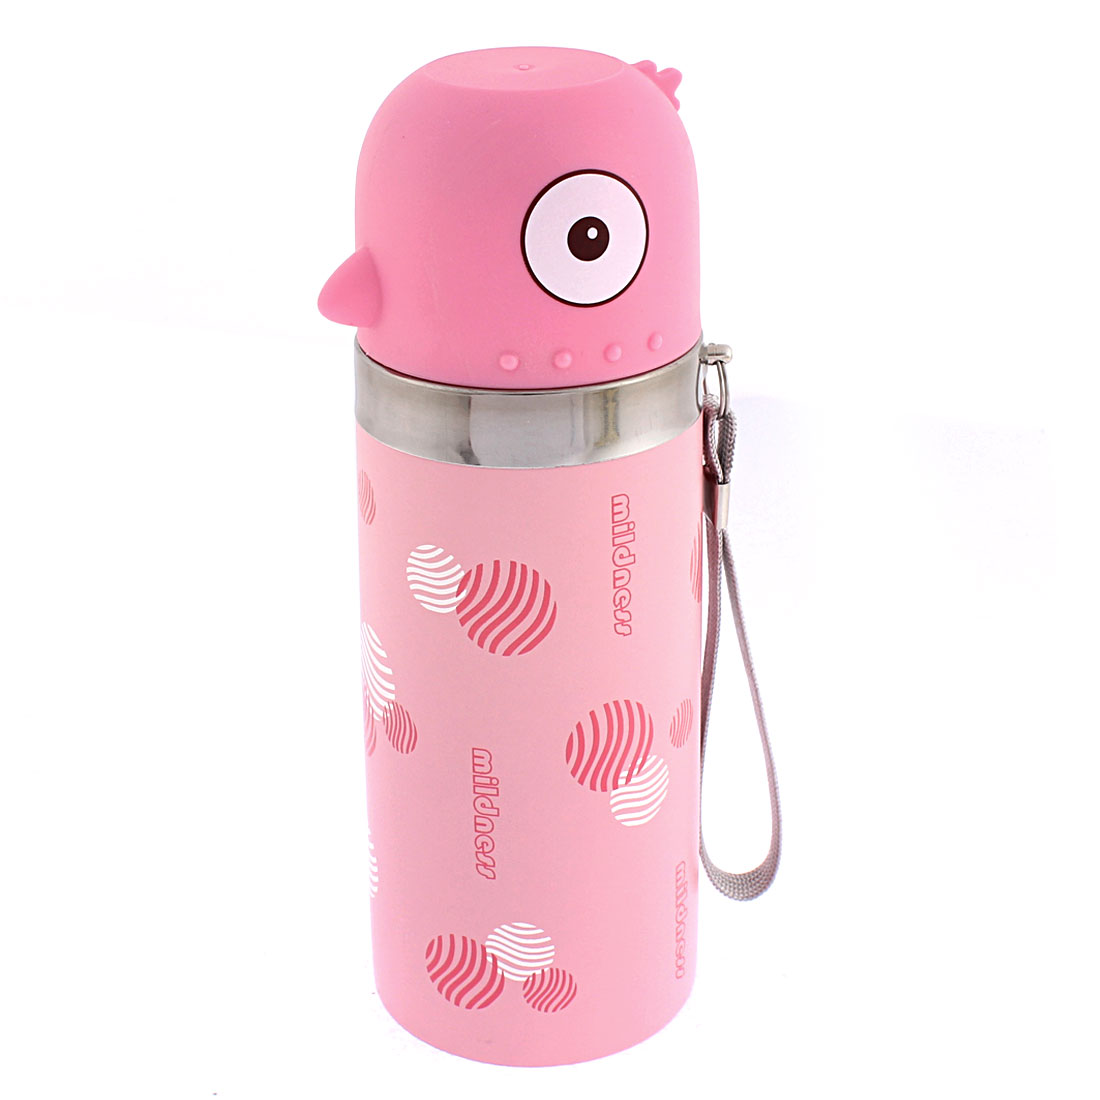 350ml Stainless Steel Heat Retaining Vacuum Flask Bottle Container Jar Pink